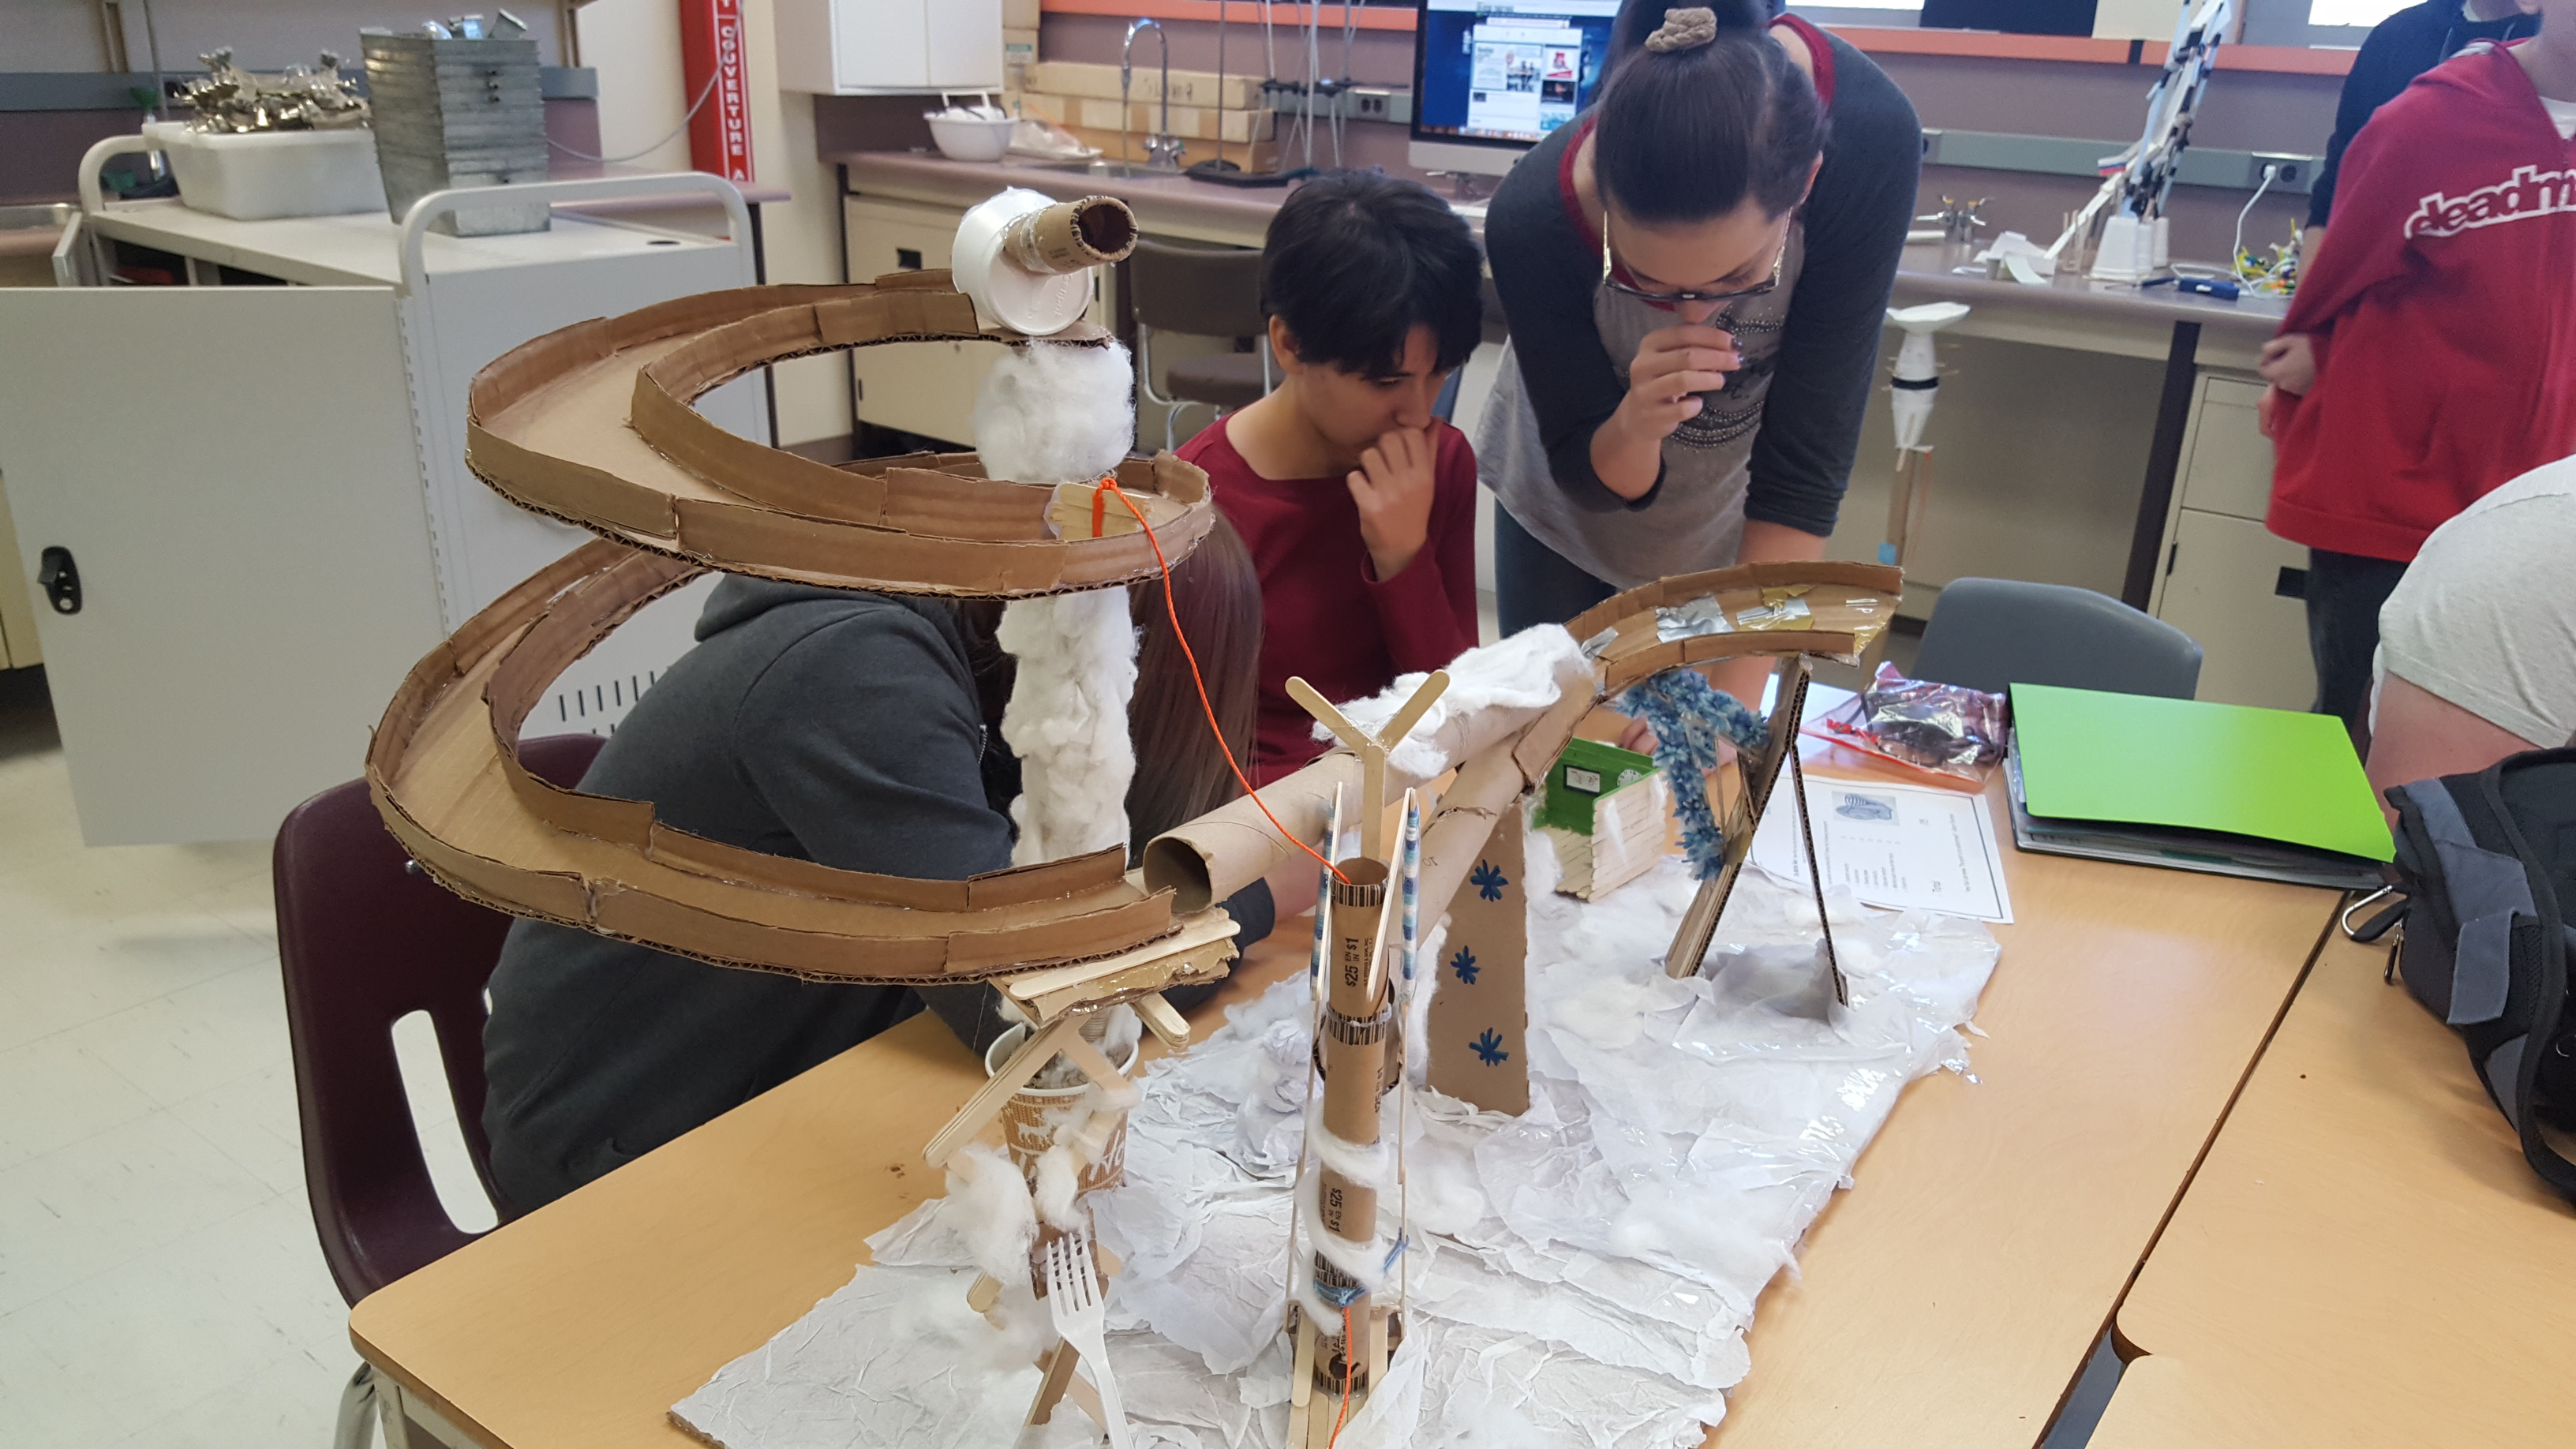 Read more about the article PBL: Marble run project with physics emphasis